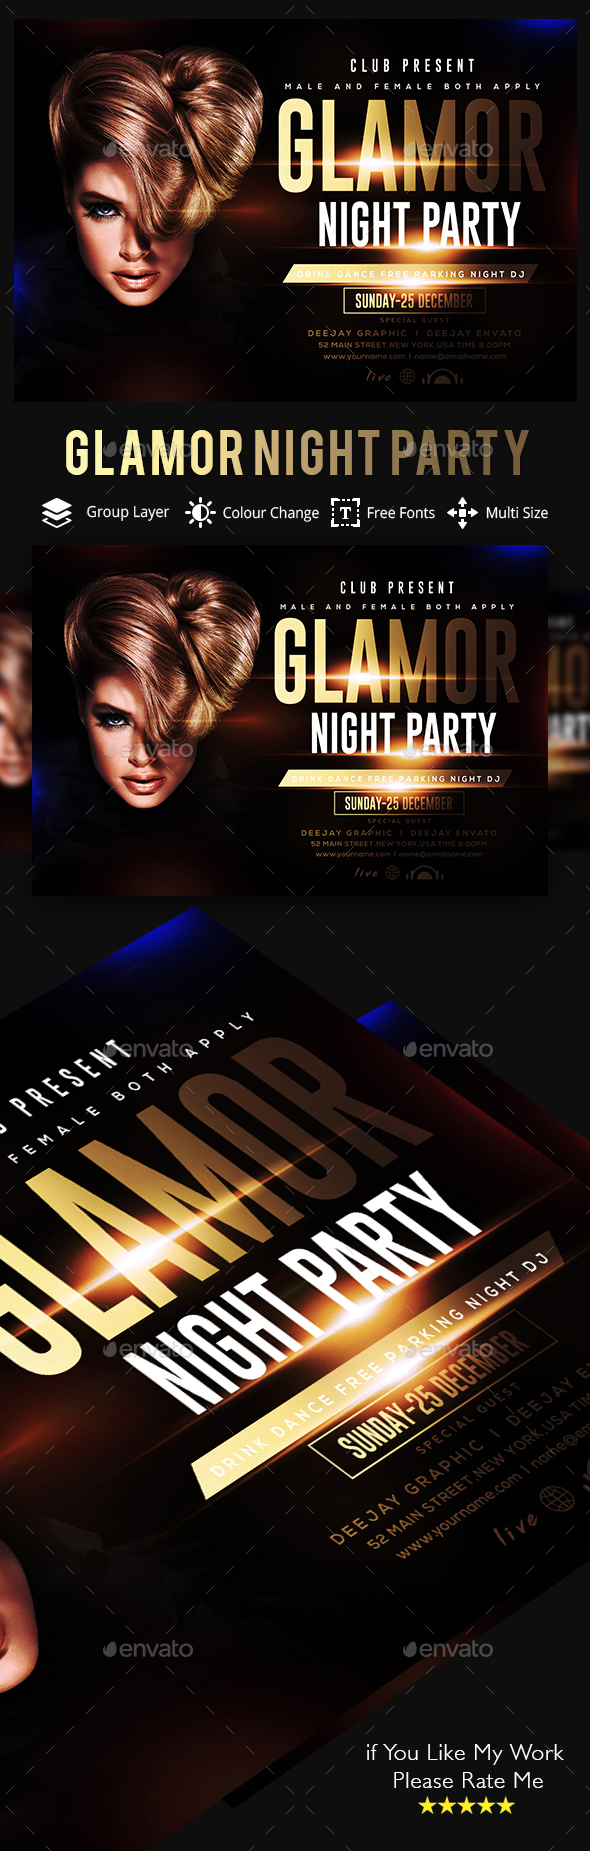 Glamorous Party Flyer - Clubs & Parties Events